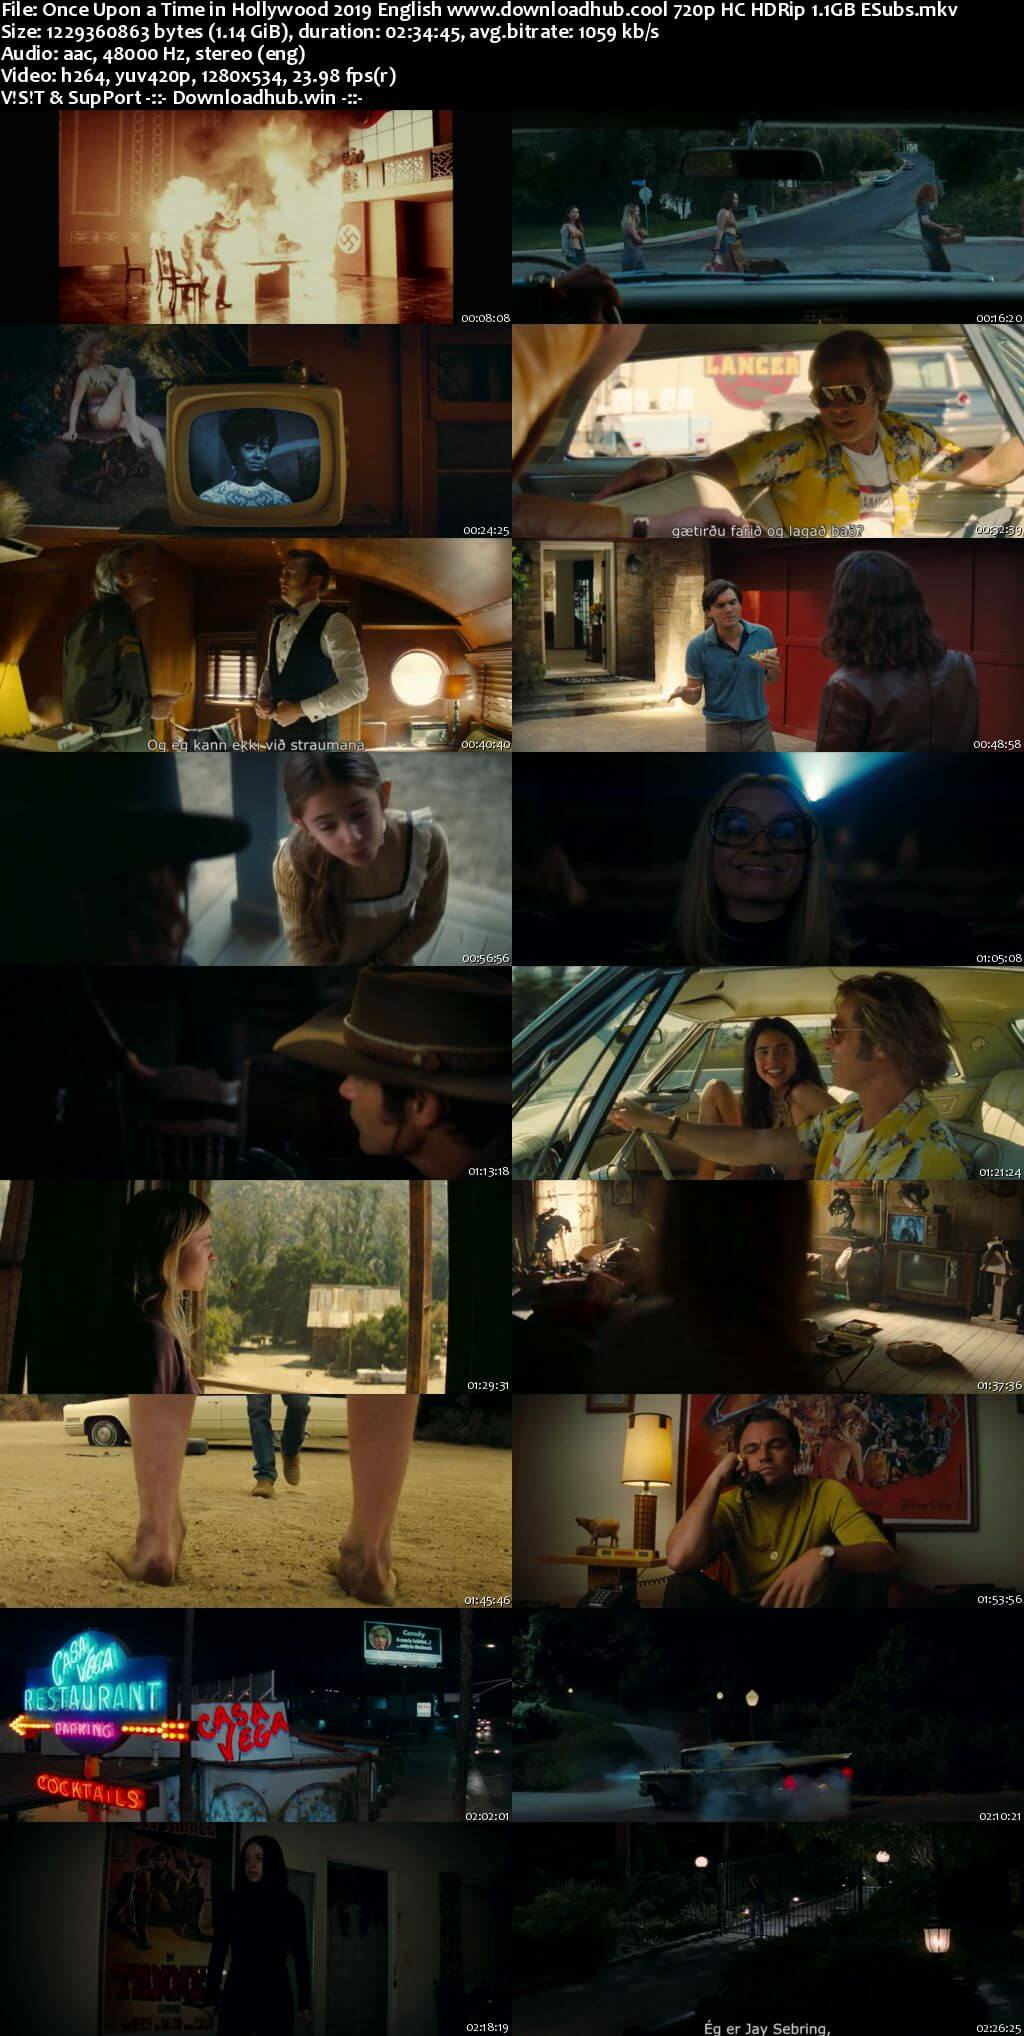 Once Upon a Time in Hollywood 2019 English 720p HC HDRip 1.1GB ESubs